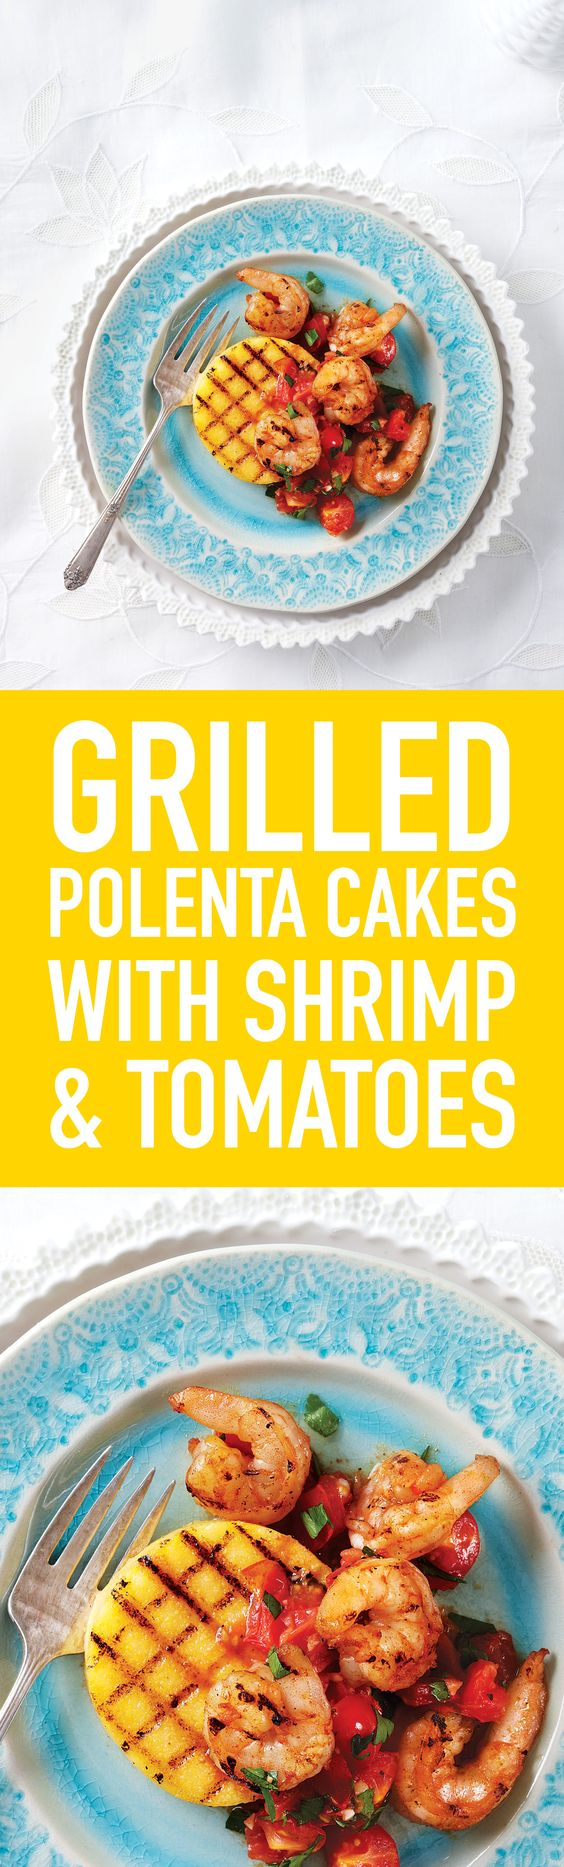 Grilled Polenta Cakes with Shrimp and Tomatoes uses pre-made polenta ...